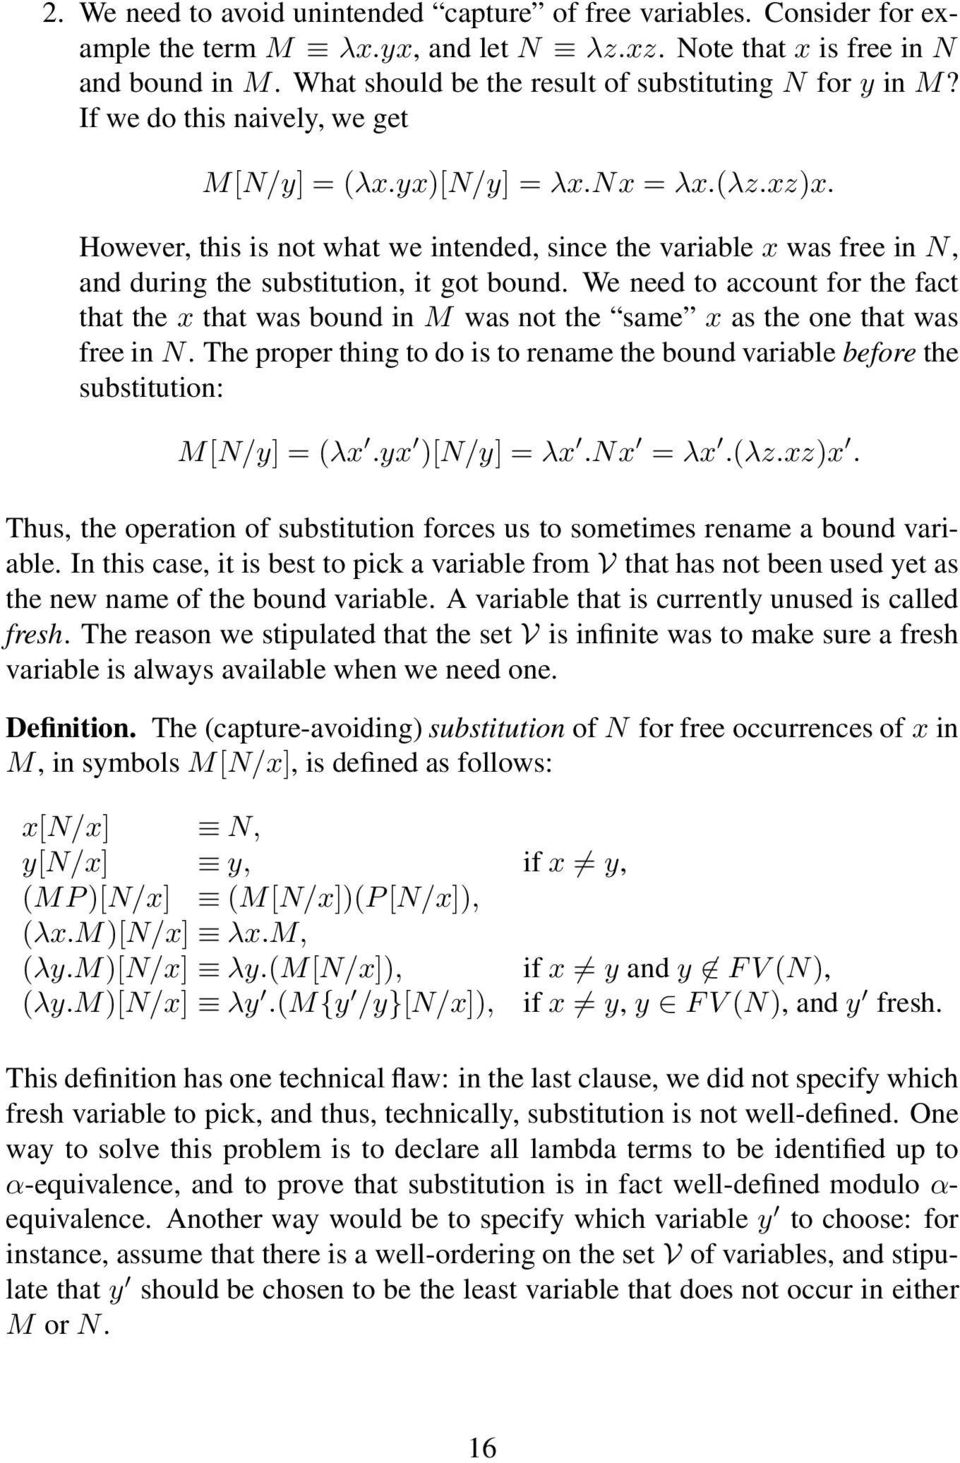 However, this is not what we intended, since the variable x was free in N, and during the substitution, it got bound.